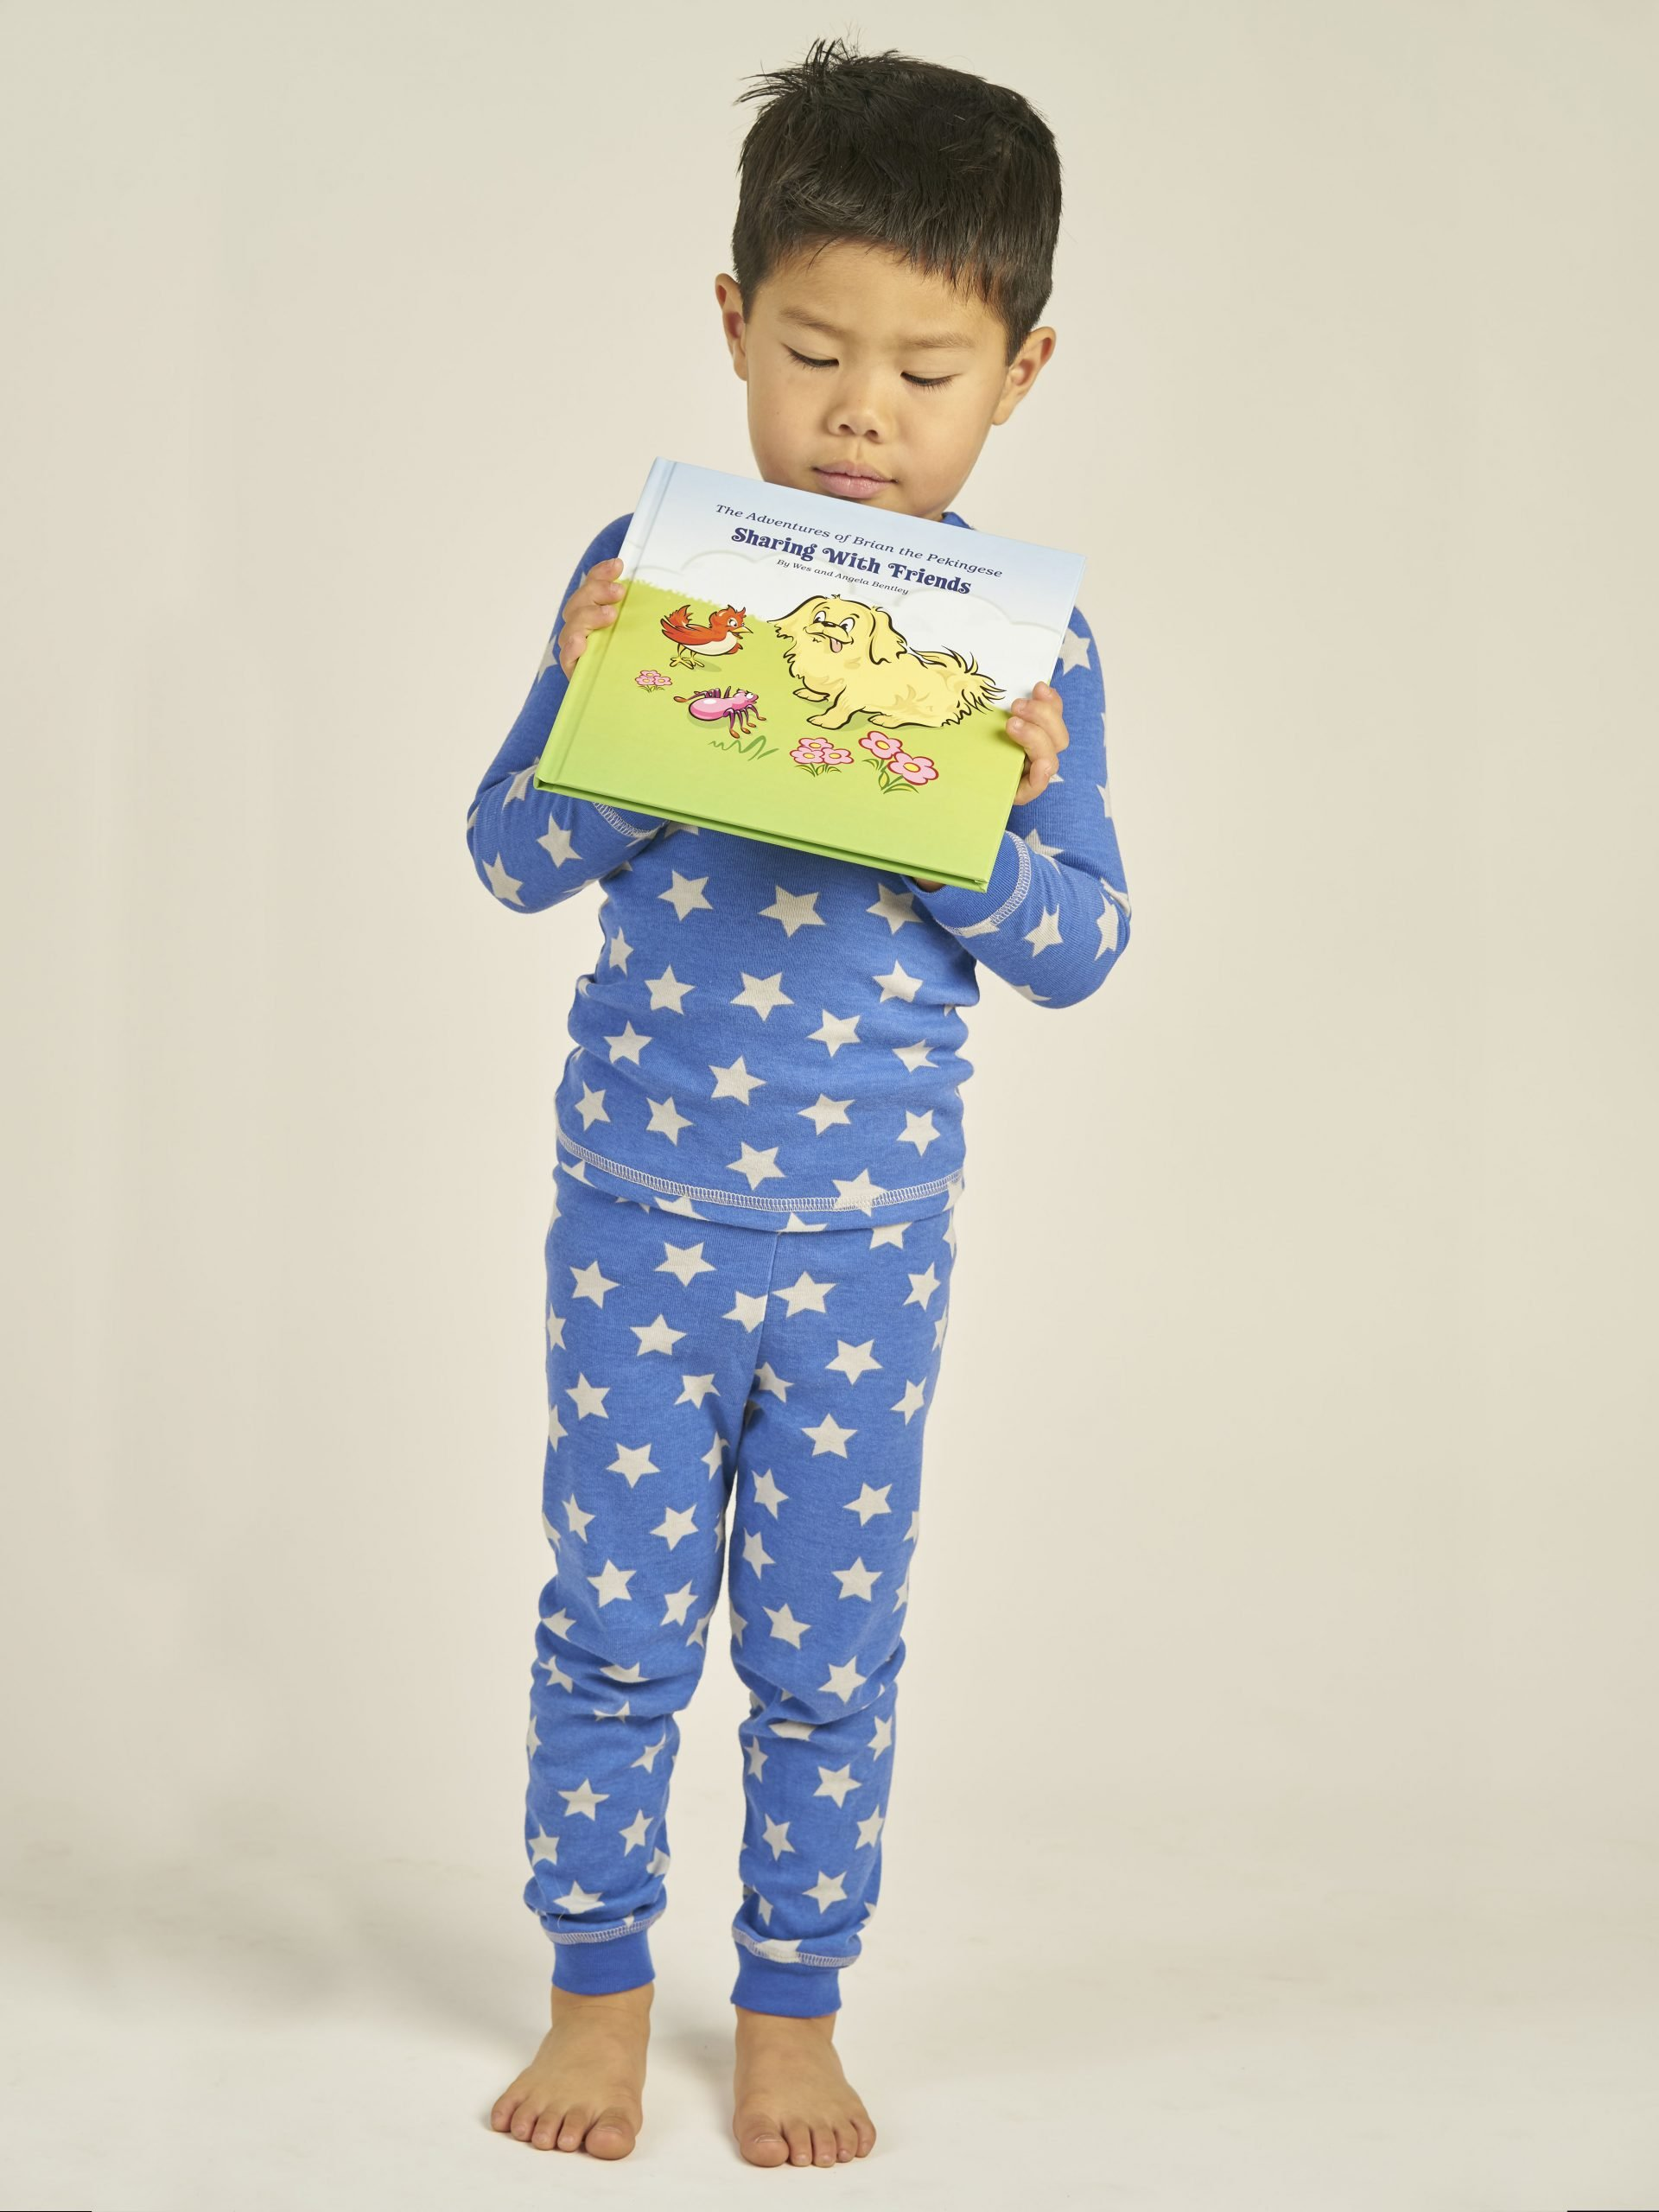 Child holding a children's bedtime storybook